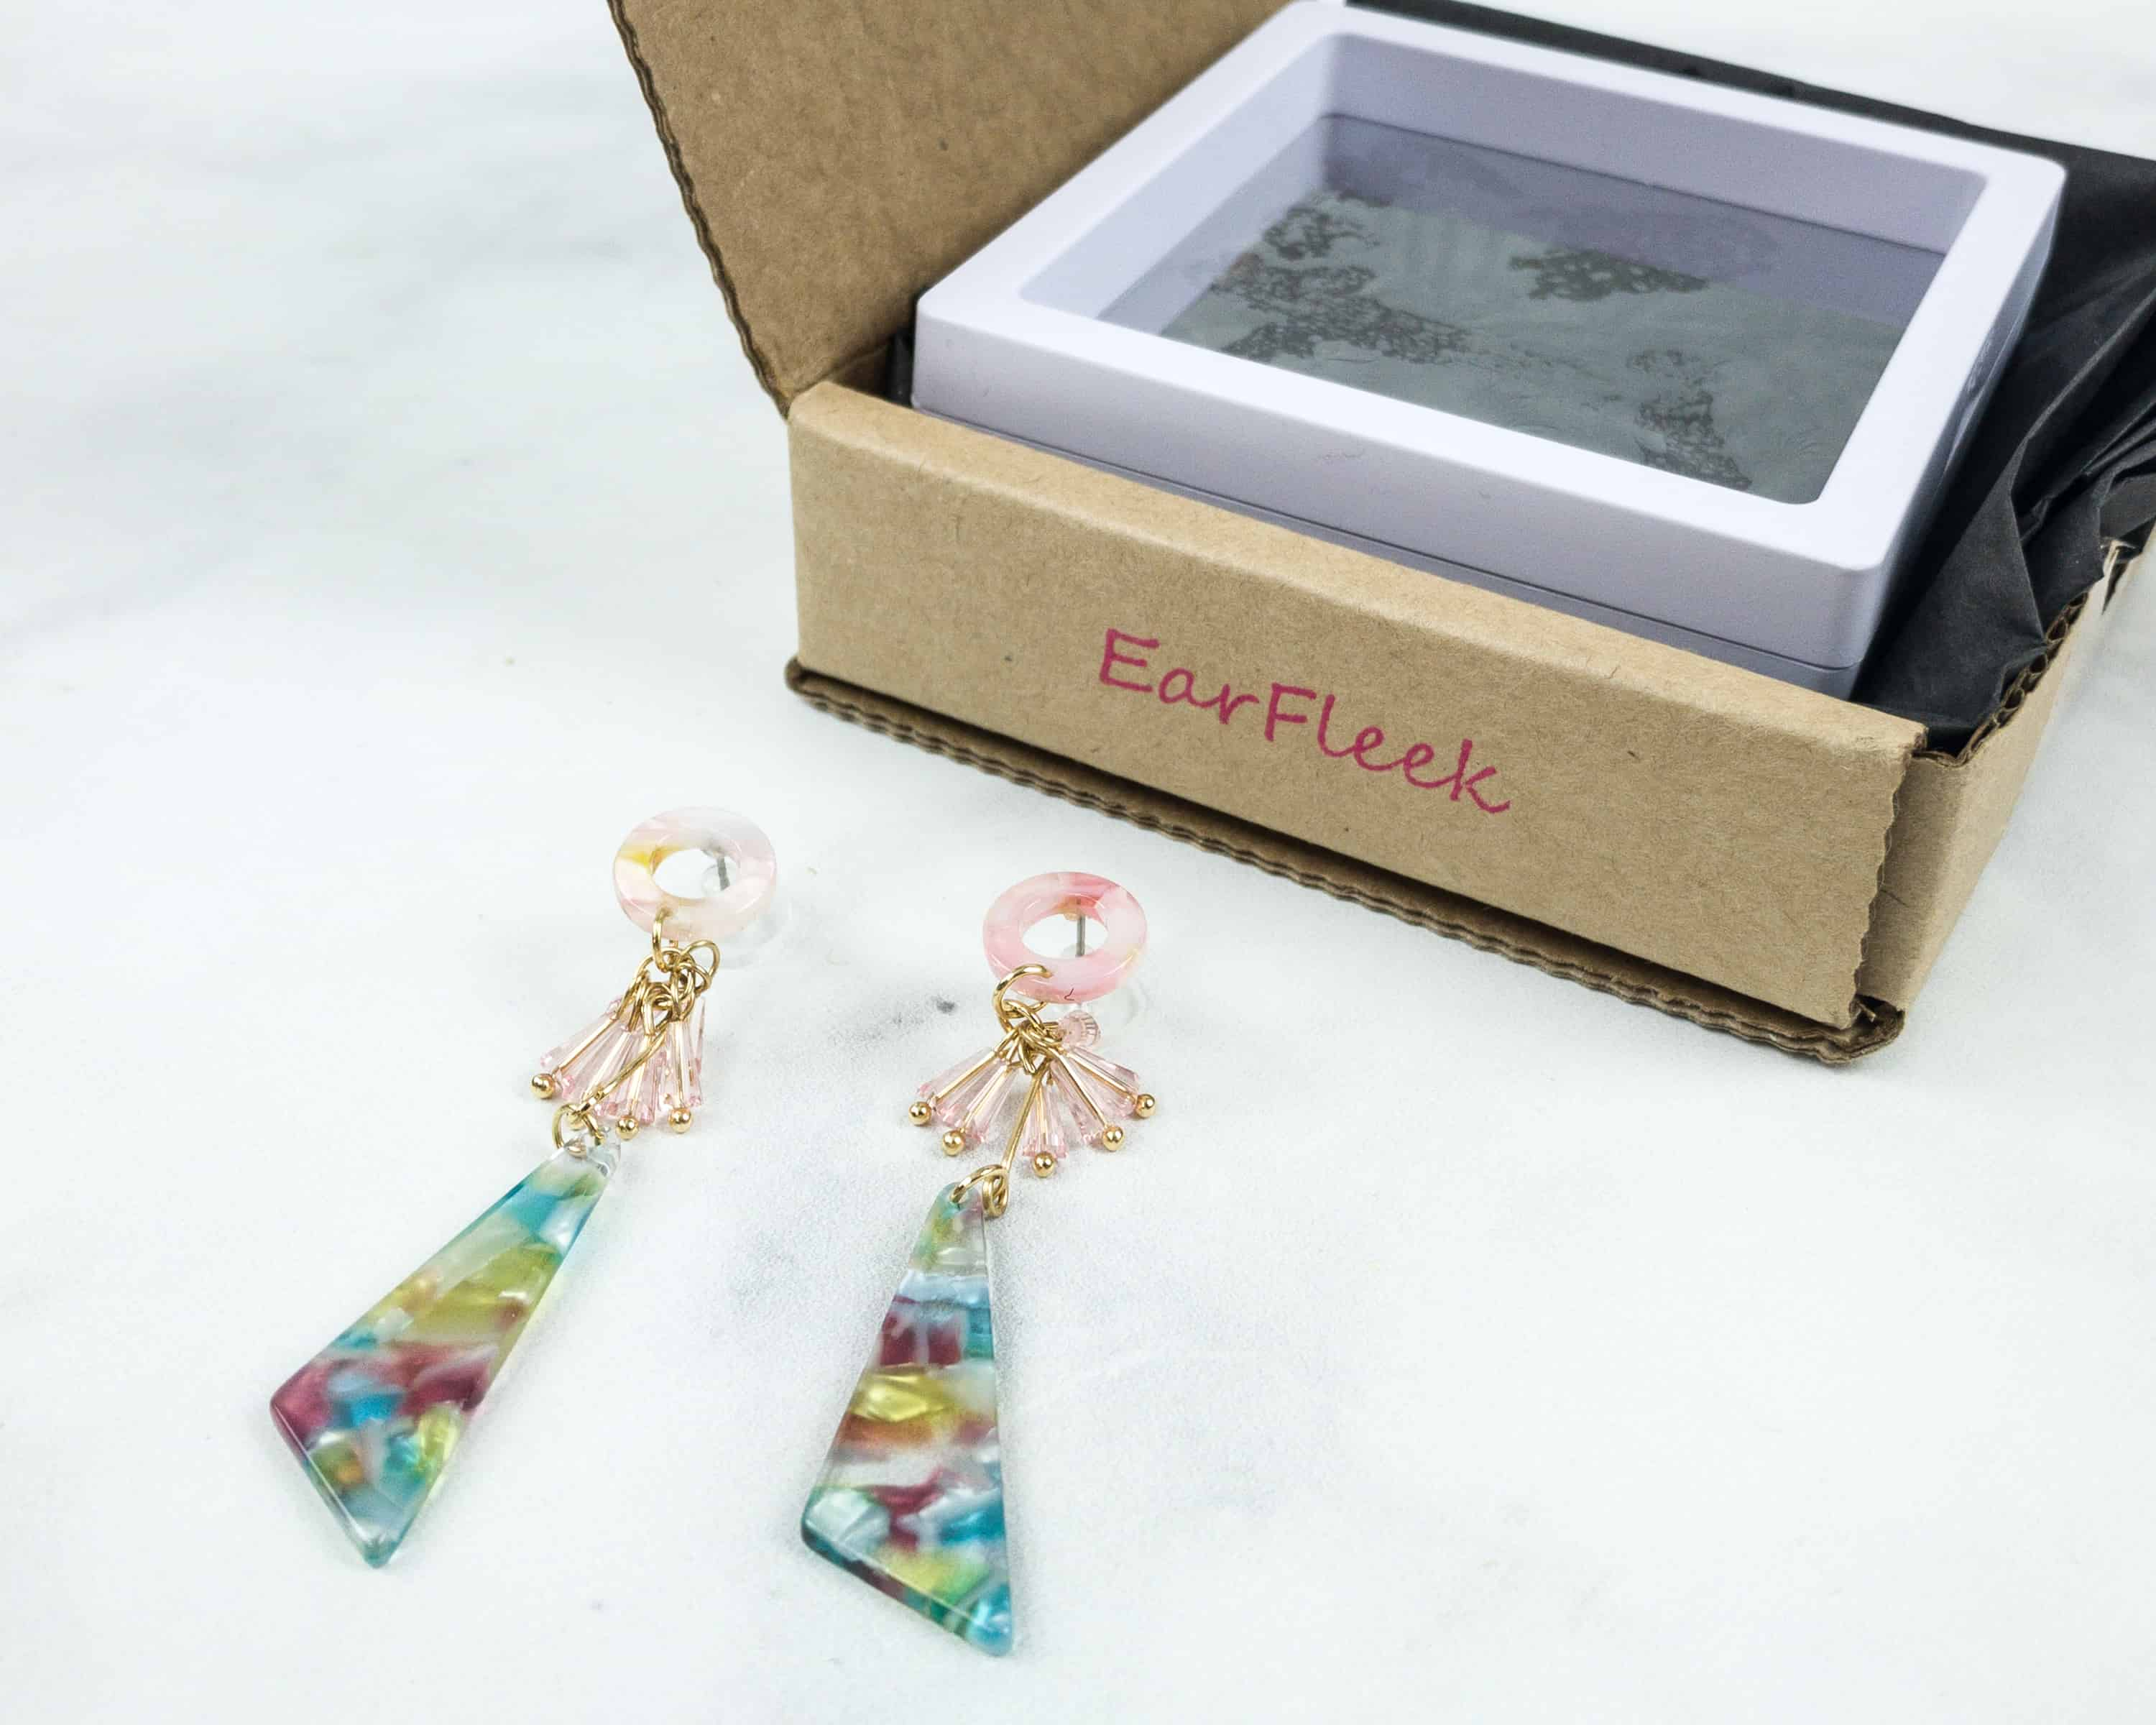 EarFleek Premium Silly Fun October 2018 Subscription Box Review + Coupon